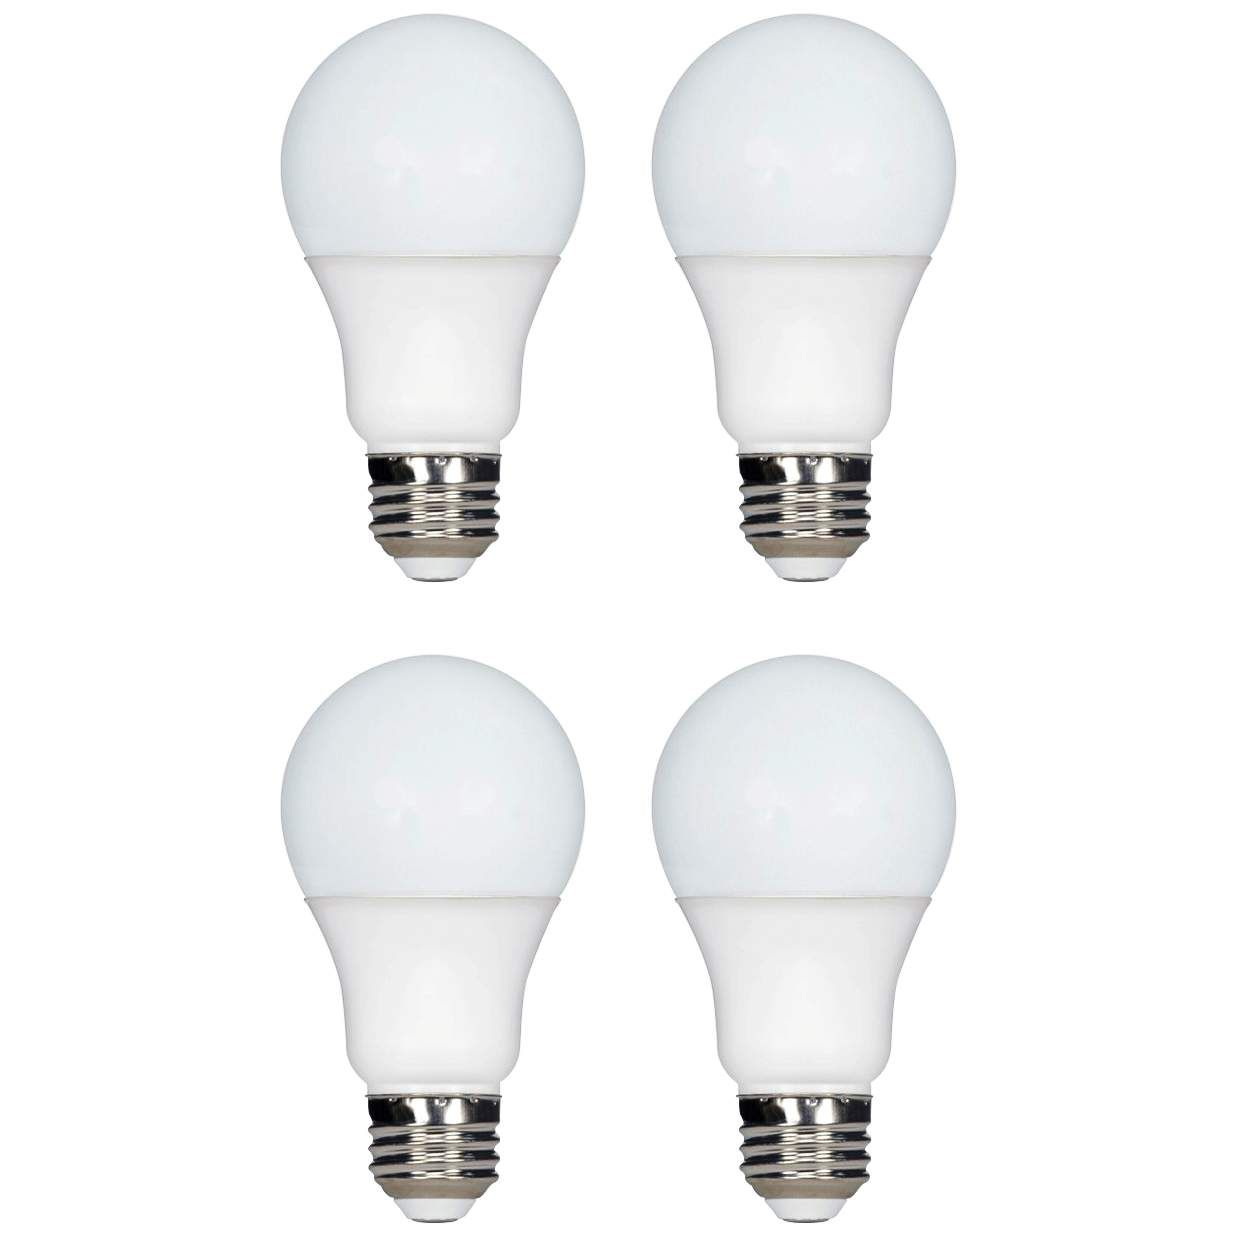 100w Equivalent Tesler 15w Led Dimmable Standard 4 Pack A21 Dimmable Led Lights Bulb Led